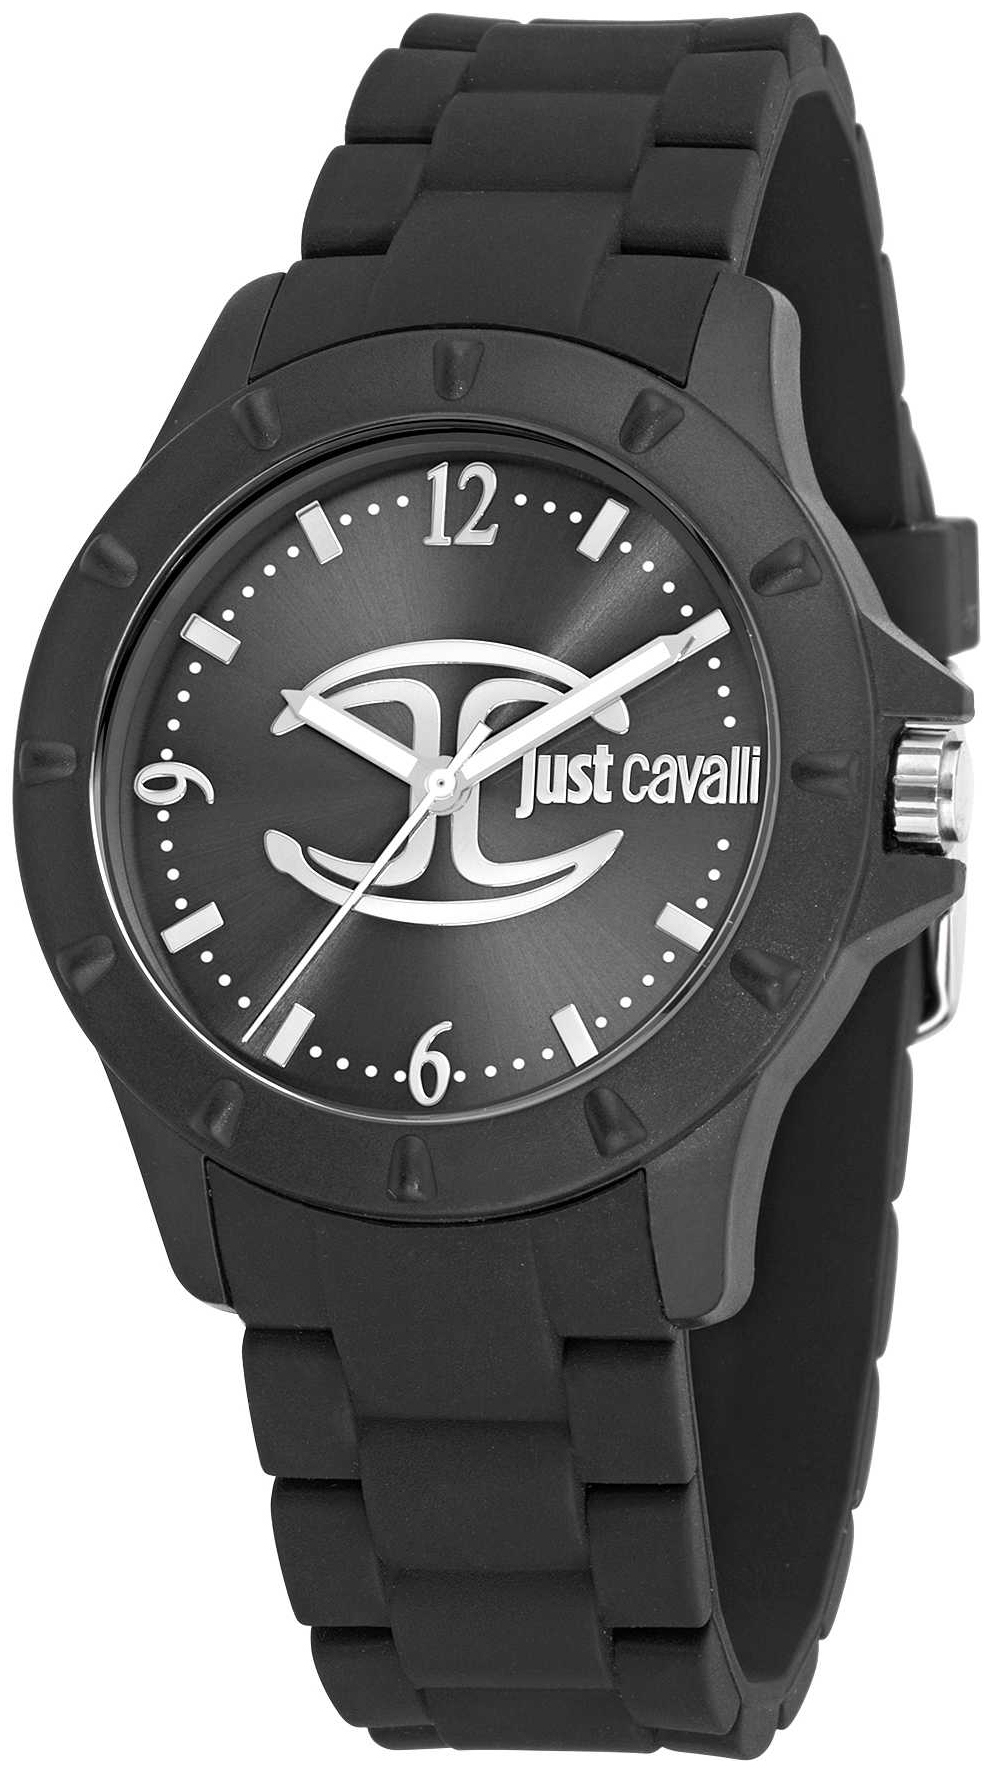 Just Cavalli Just Juyce Dameklokke R7253599511 Sort/Gummi Ø40 mm - Just Cavalli